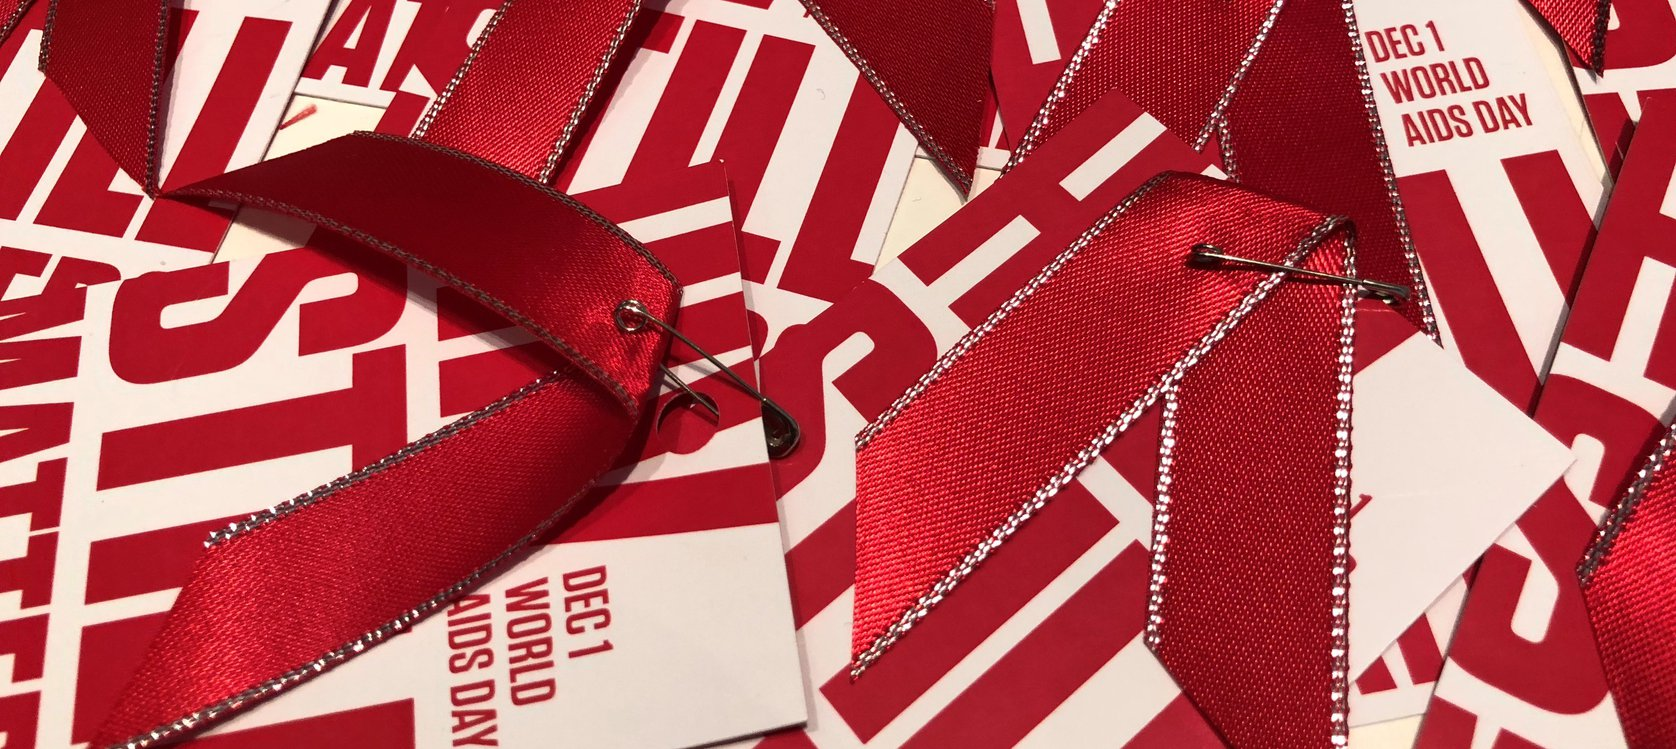 World AIDS Day Red Ribbons